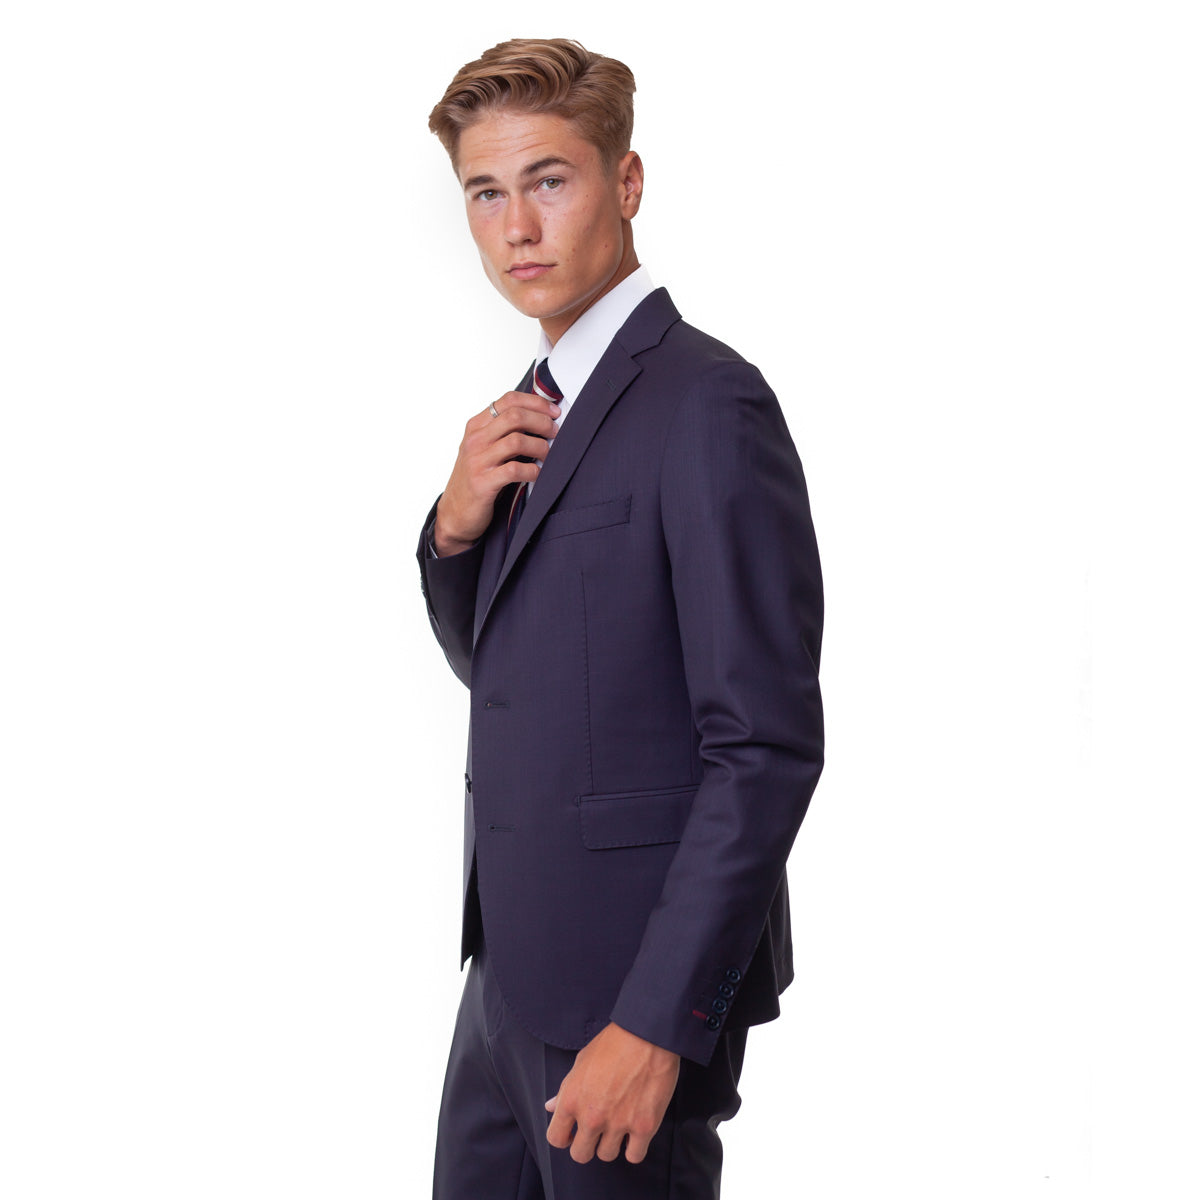 Zero Weight Model A Suit - Marine